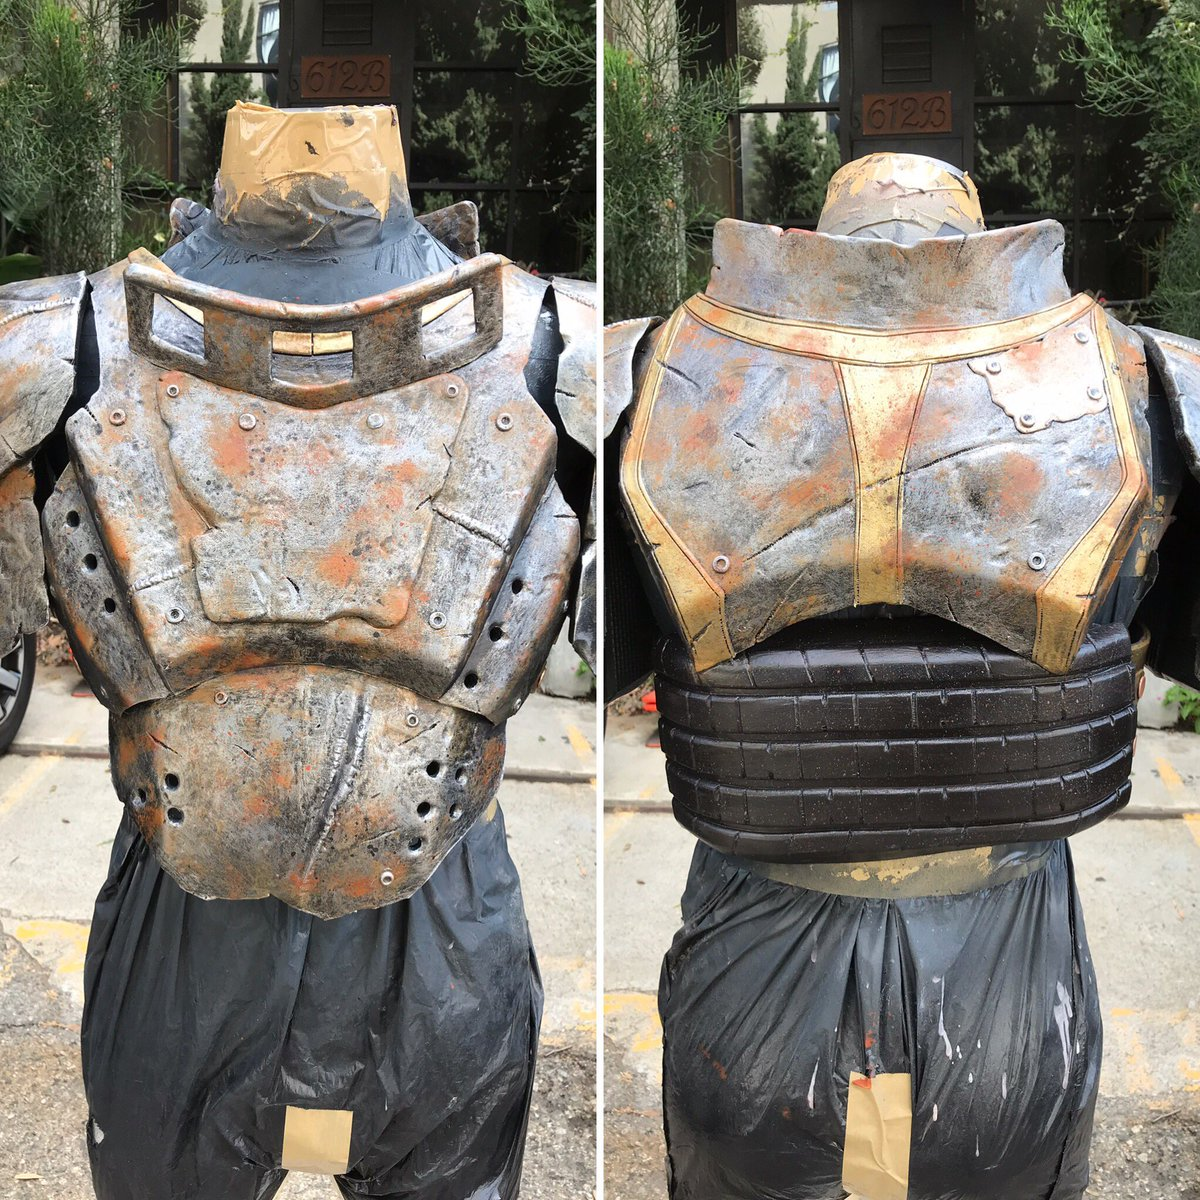 Fallout 4 Metal Armor is painted. Next step is to add strips of leather and rope. Join me on https://t.co/4njNSzw0T9 9am pst Monday. #cosplay #foam #foamsmith #fallout4 #metalarmor #diy #maker #eva #evafoam https://t.co/KbRKAp1Qtt